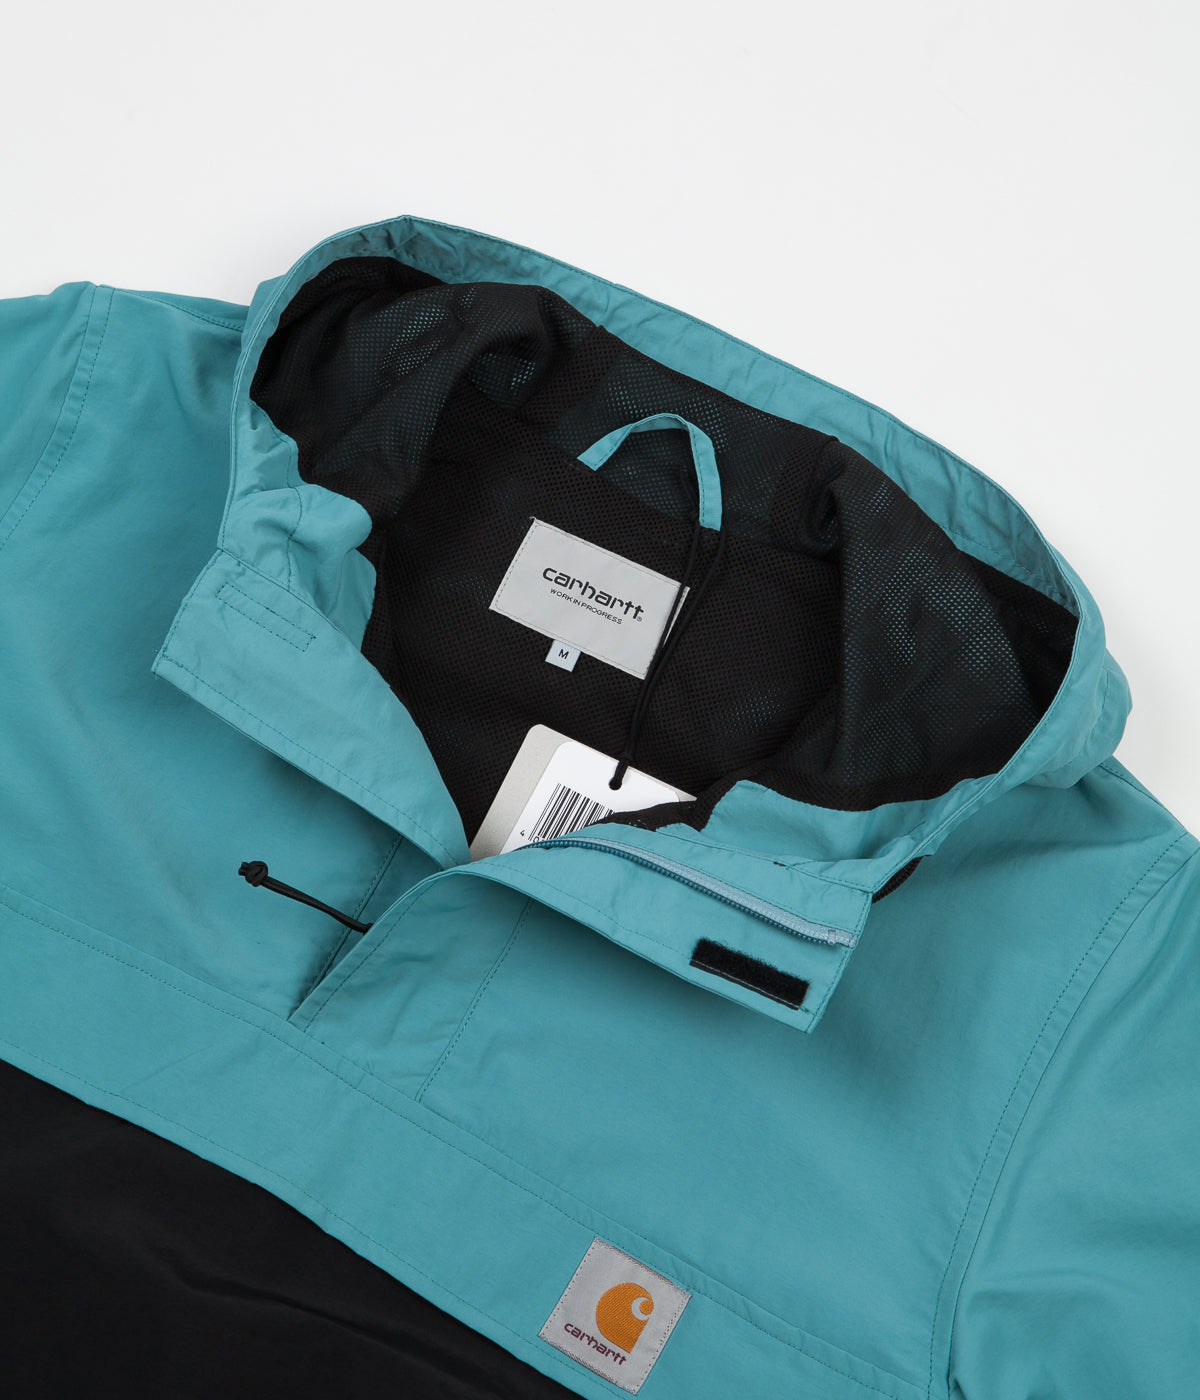 Carhartt Nimbus Two Tone Pullover Jacket - Soft Teal / Black